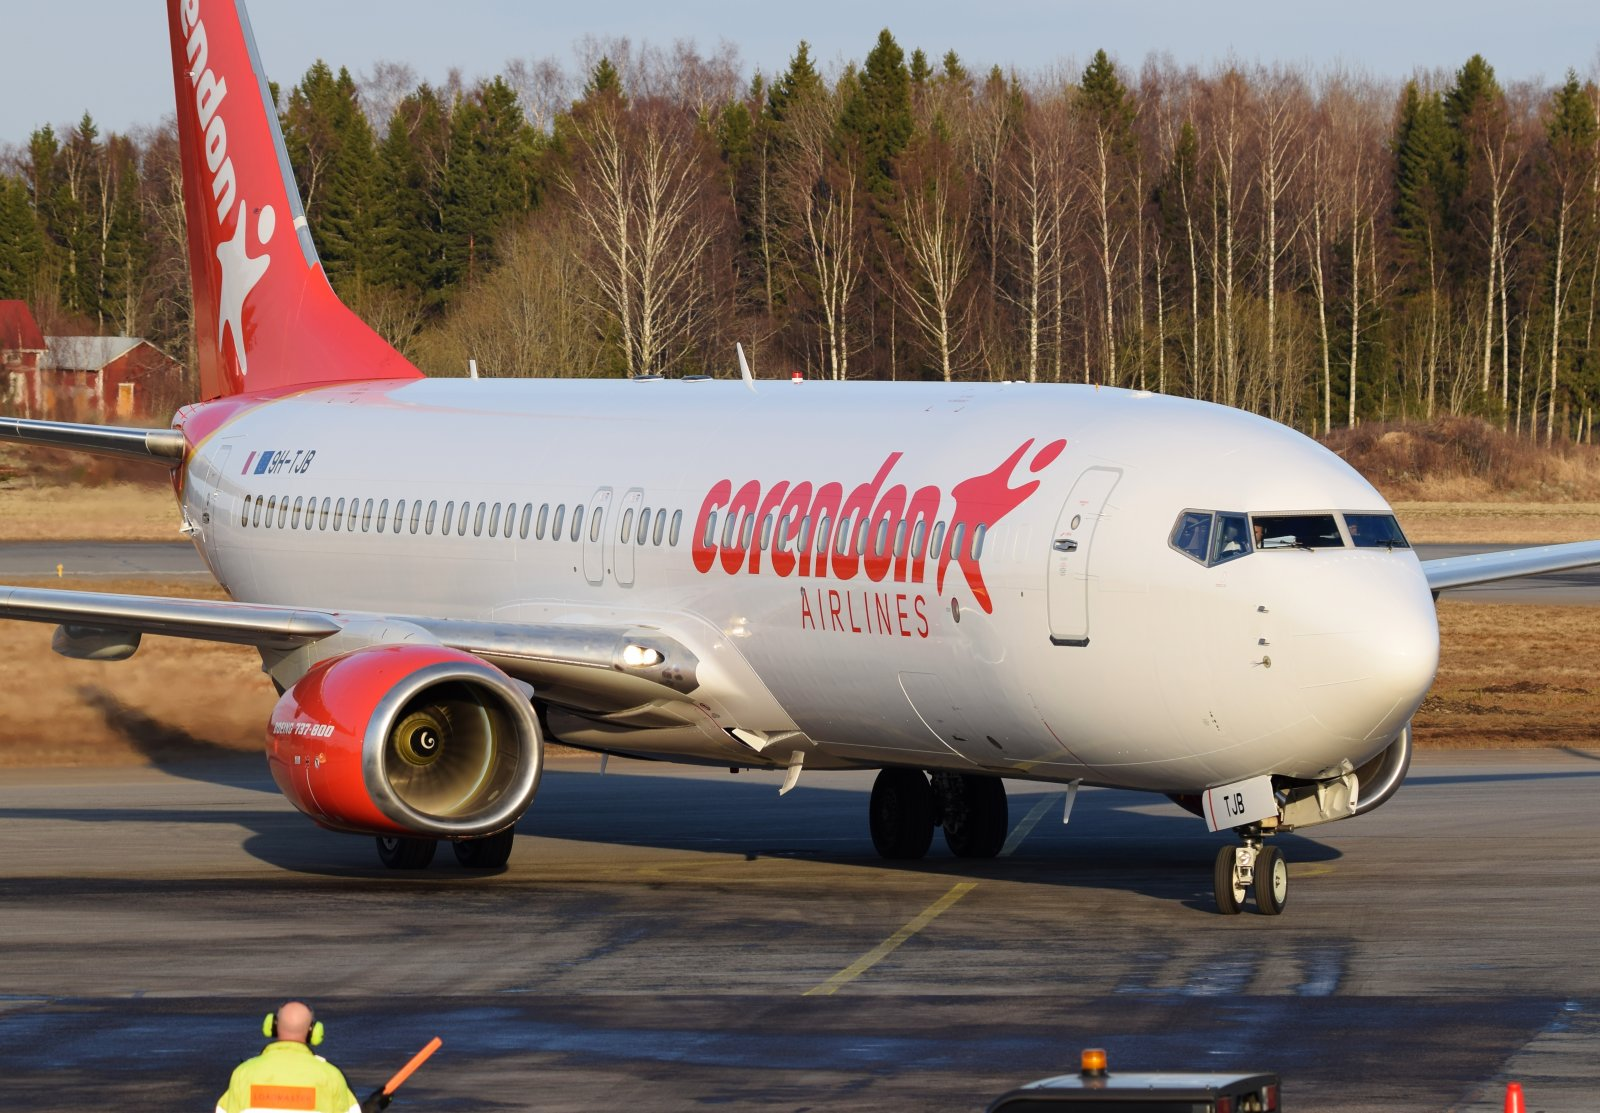 9H-TJB - Boeing 737-8FH - Corendon Airlines Europe - 20.4.2019